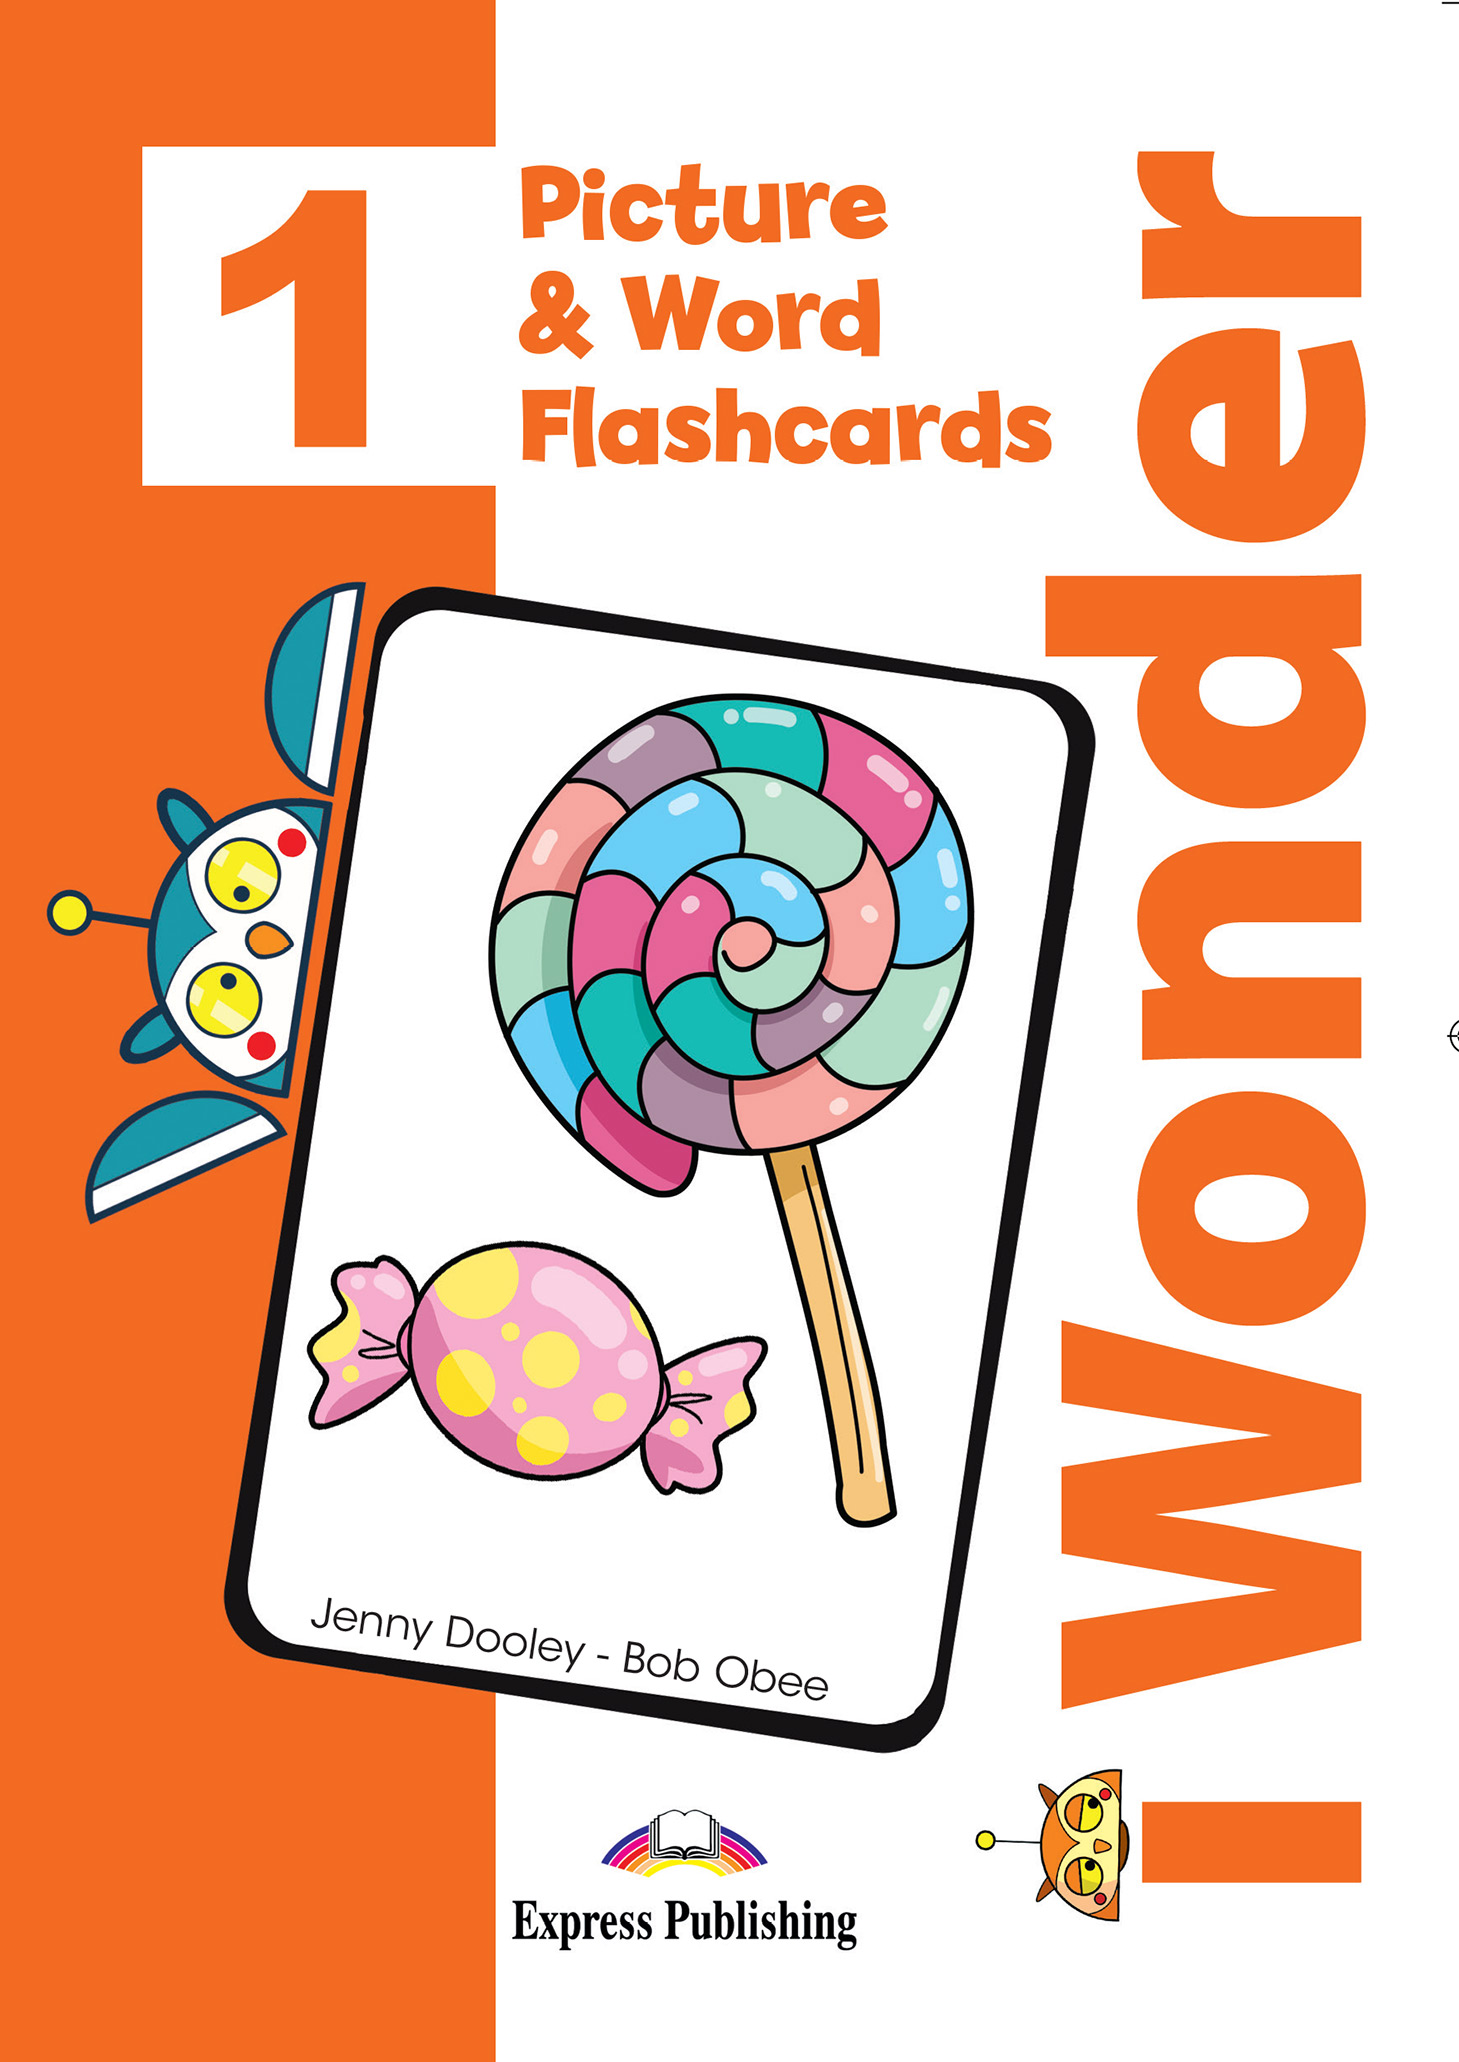 iWonder 1 - Picture & Word Flashcards